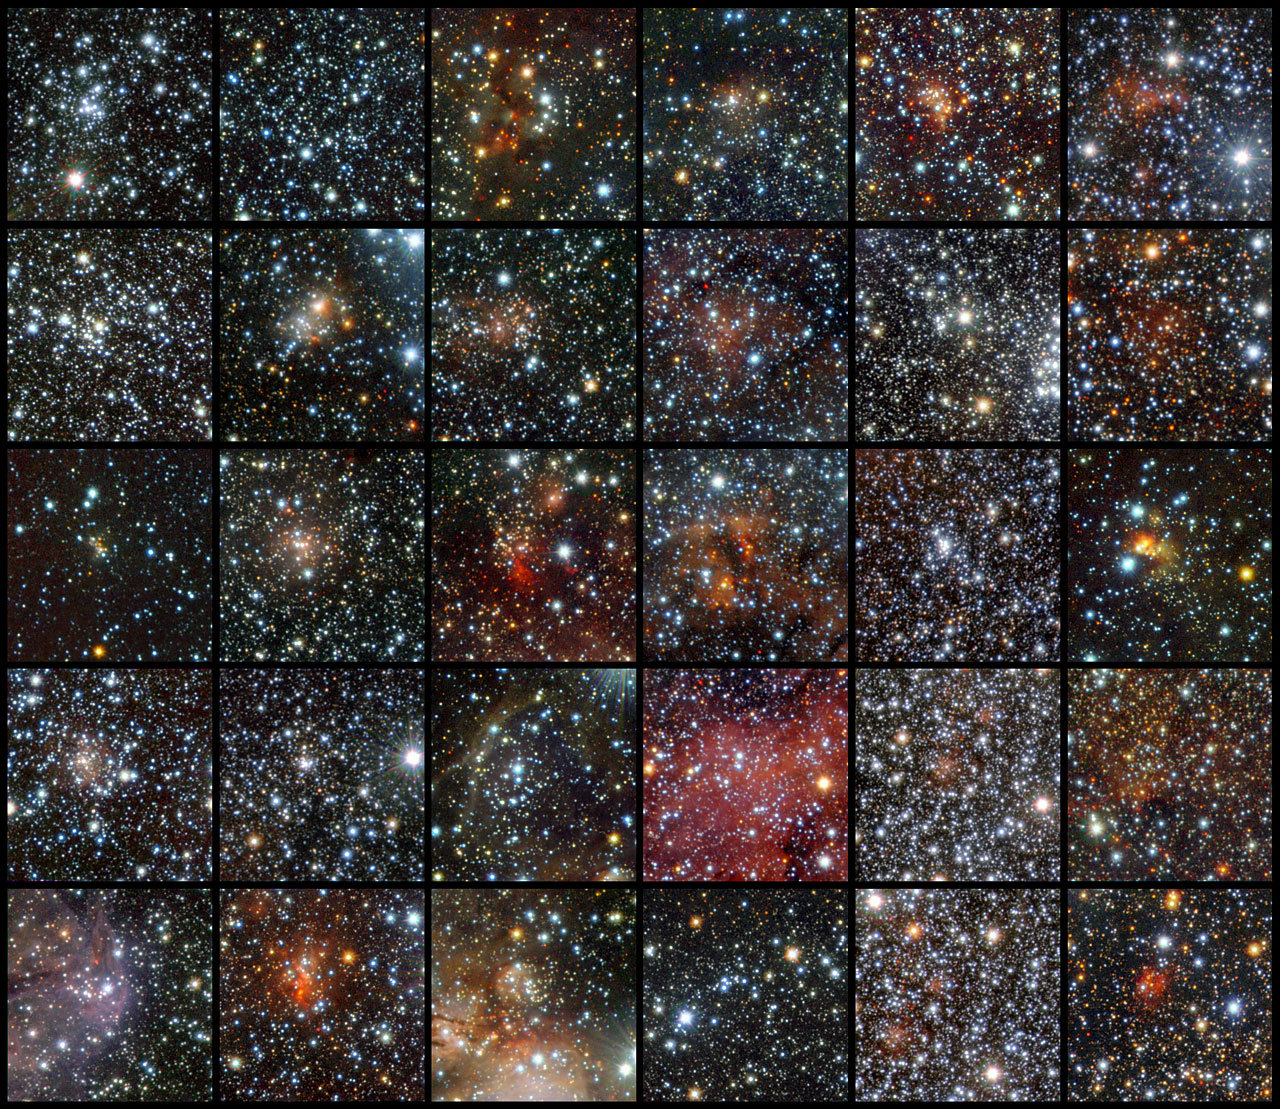 VISTA Finds 96 Star Clusters Hidden Behind Dust ESO's infrared survey telescope digs deep into star-forming regions in our Milky Way. Using data from the VISTA infrared survey telescope at ESO's Paranal Observatory, an international team of astronomers has discovered 96 new open star clusters hidden by the dust in the Milky Way. These tiny and faint objects were invisible to previous surveys, but they could not escape the sensitive infrared detectors of the world's largest survey telescope, which can peer through the dust. This is the first time so many faint and small clusters have been found at once. Keep reading.